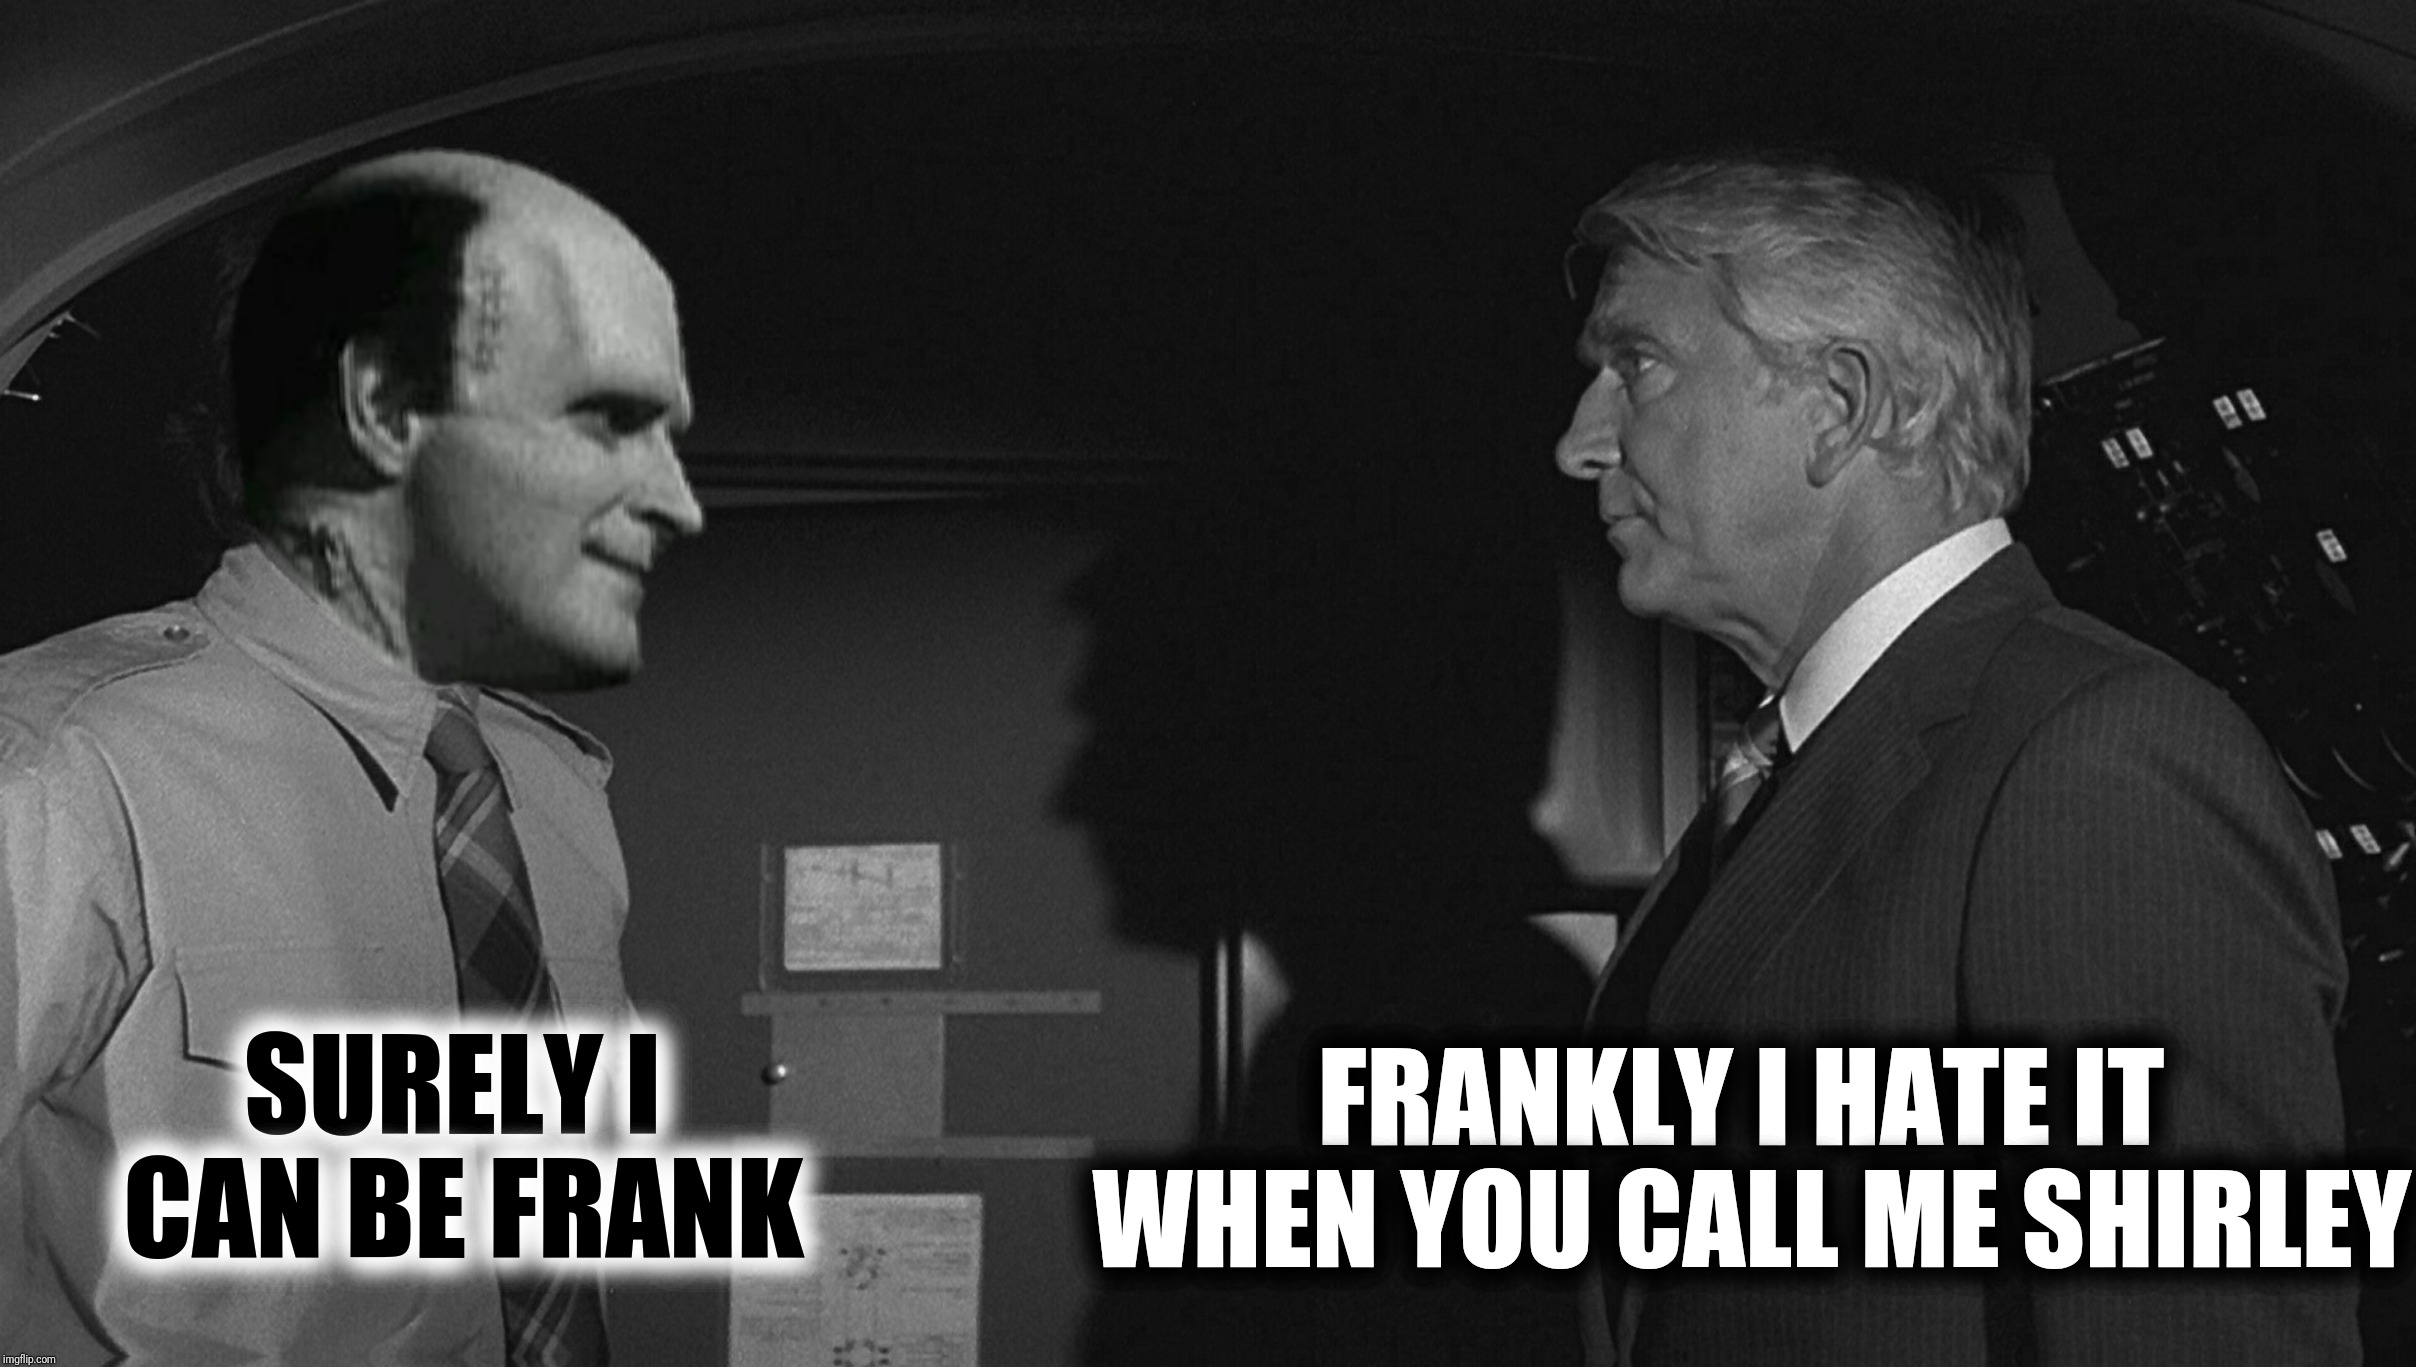 Bad Photoshop Sunday presents:  Frank was actually the name of the monster's creator | SURELY I CAN BE FRANK FRANKLY I HATE IT WHEN YOU CALL ME SHIRLEY | image tagged in bad photoshop sunday,young frankenstein,airplane,don't call me shirley | made w/ Imgflip meme maker